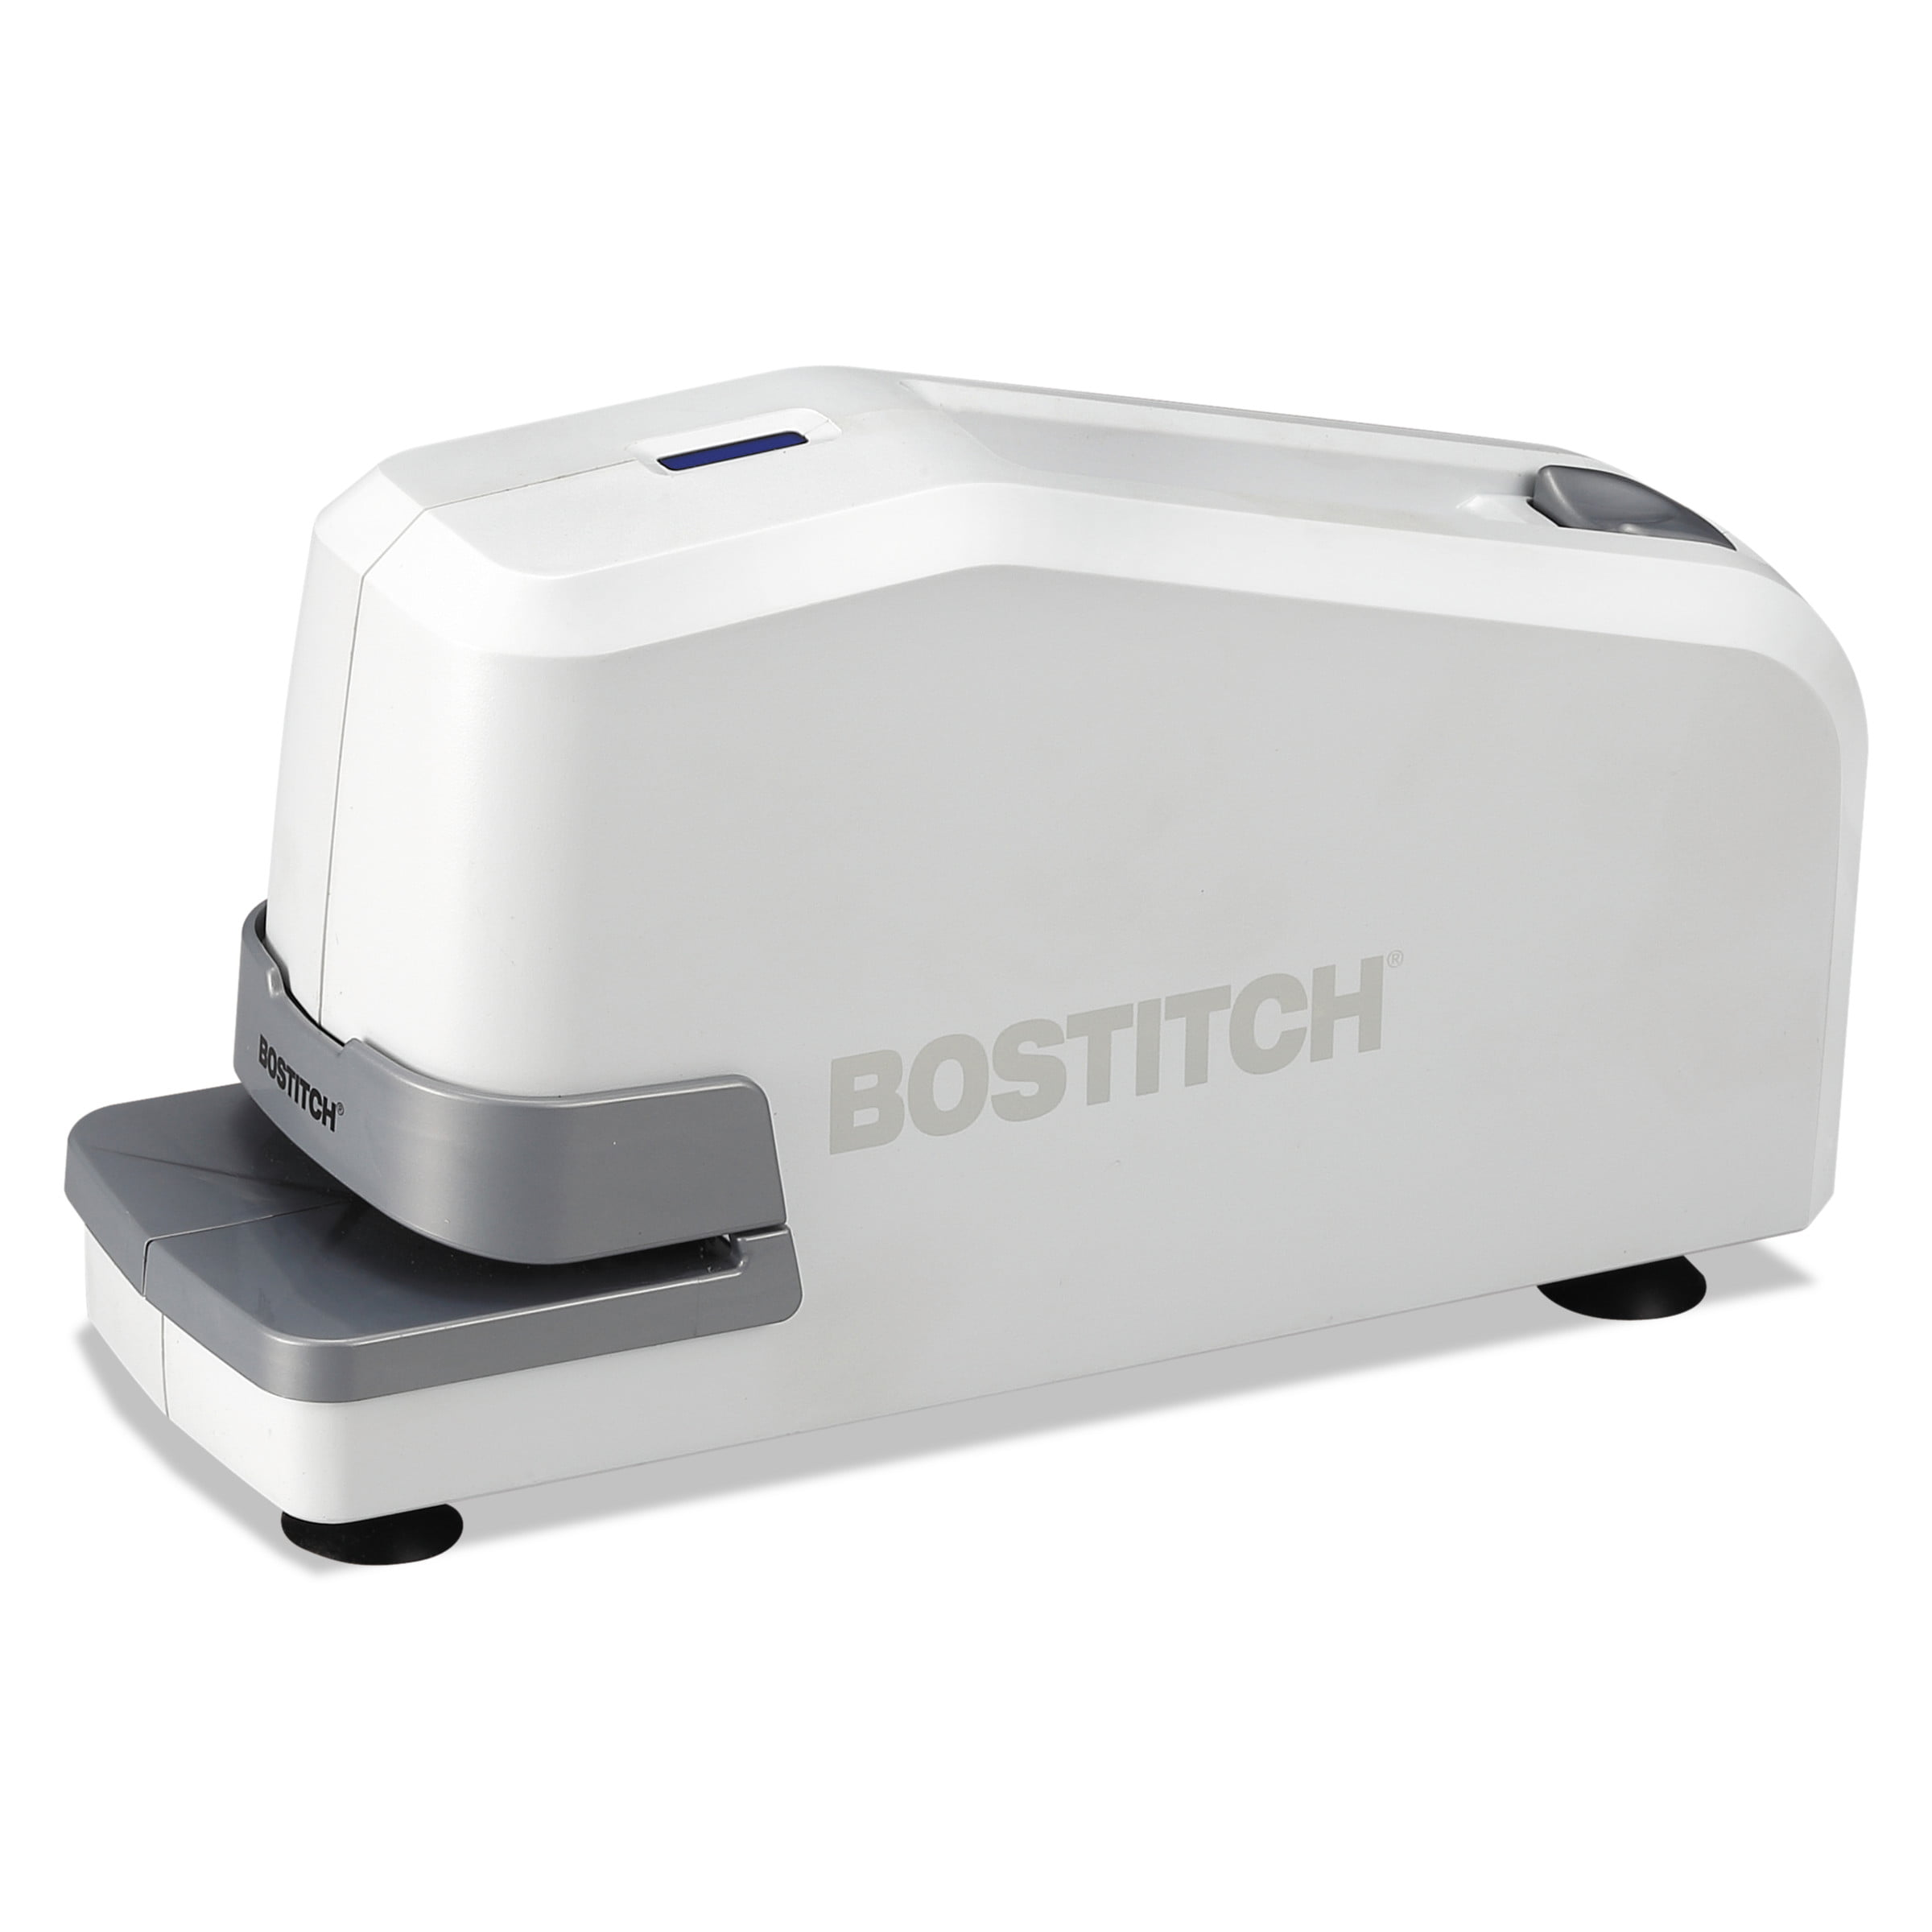 Bostitch Impulse 25 Electric Stapler, 25-SHeet Capacity, White by STANLEY BOSTITCH